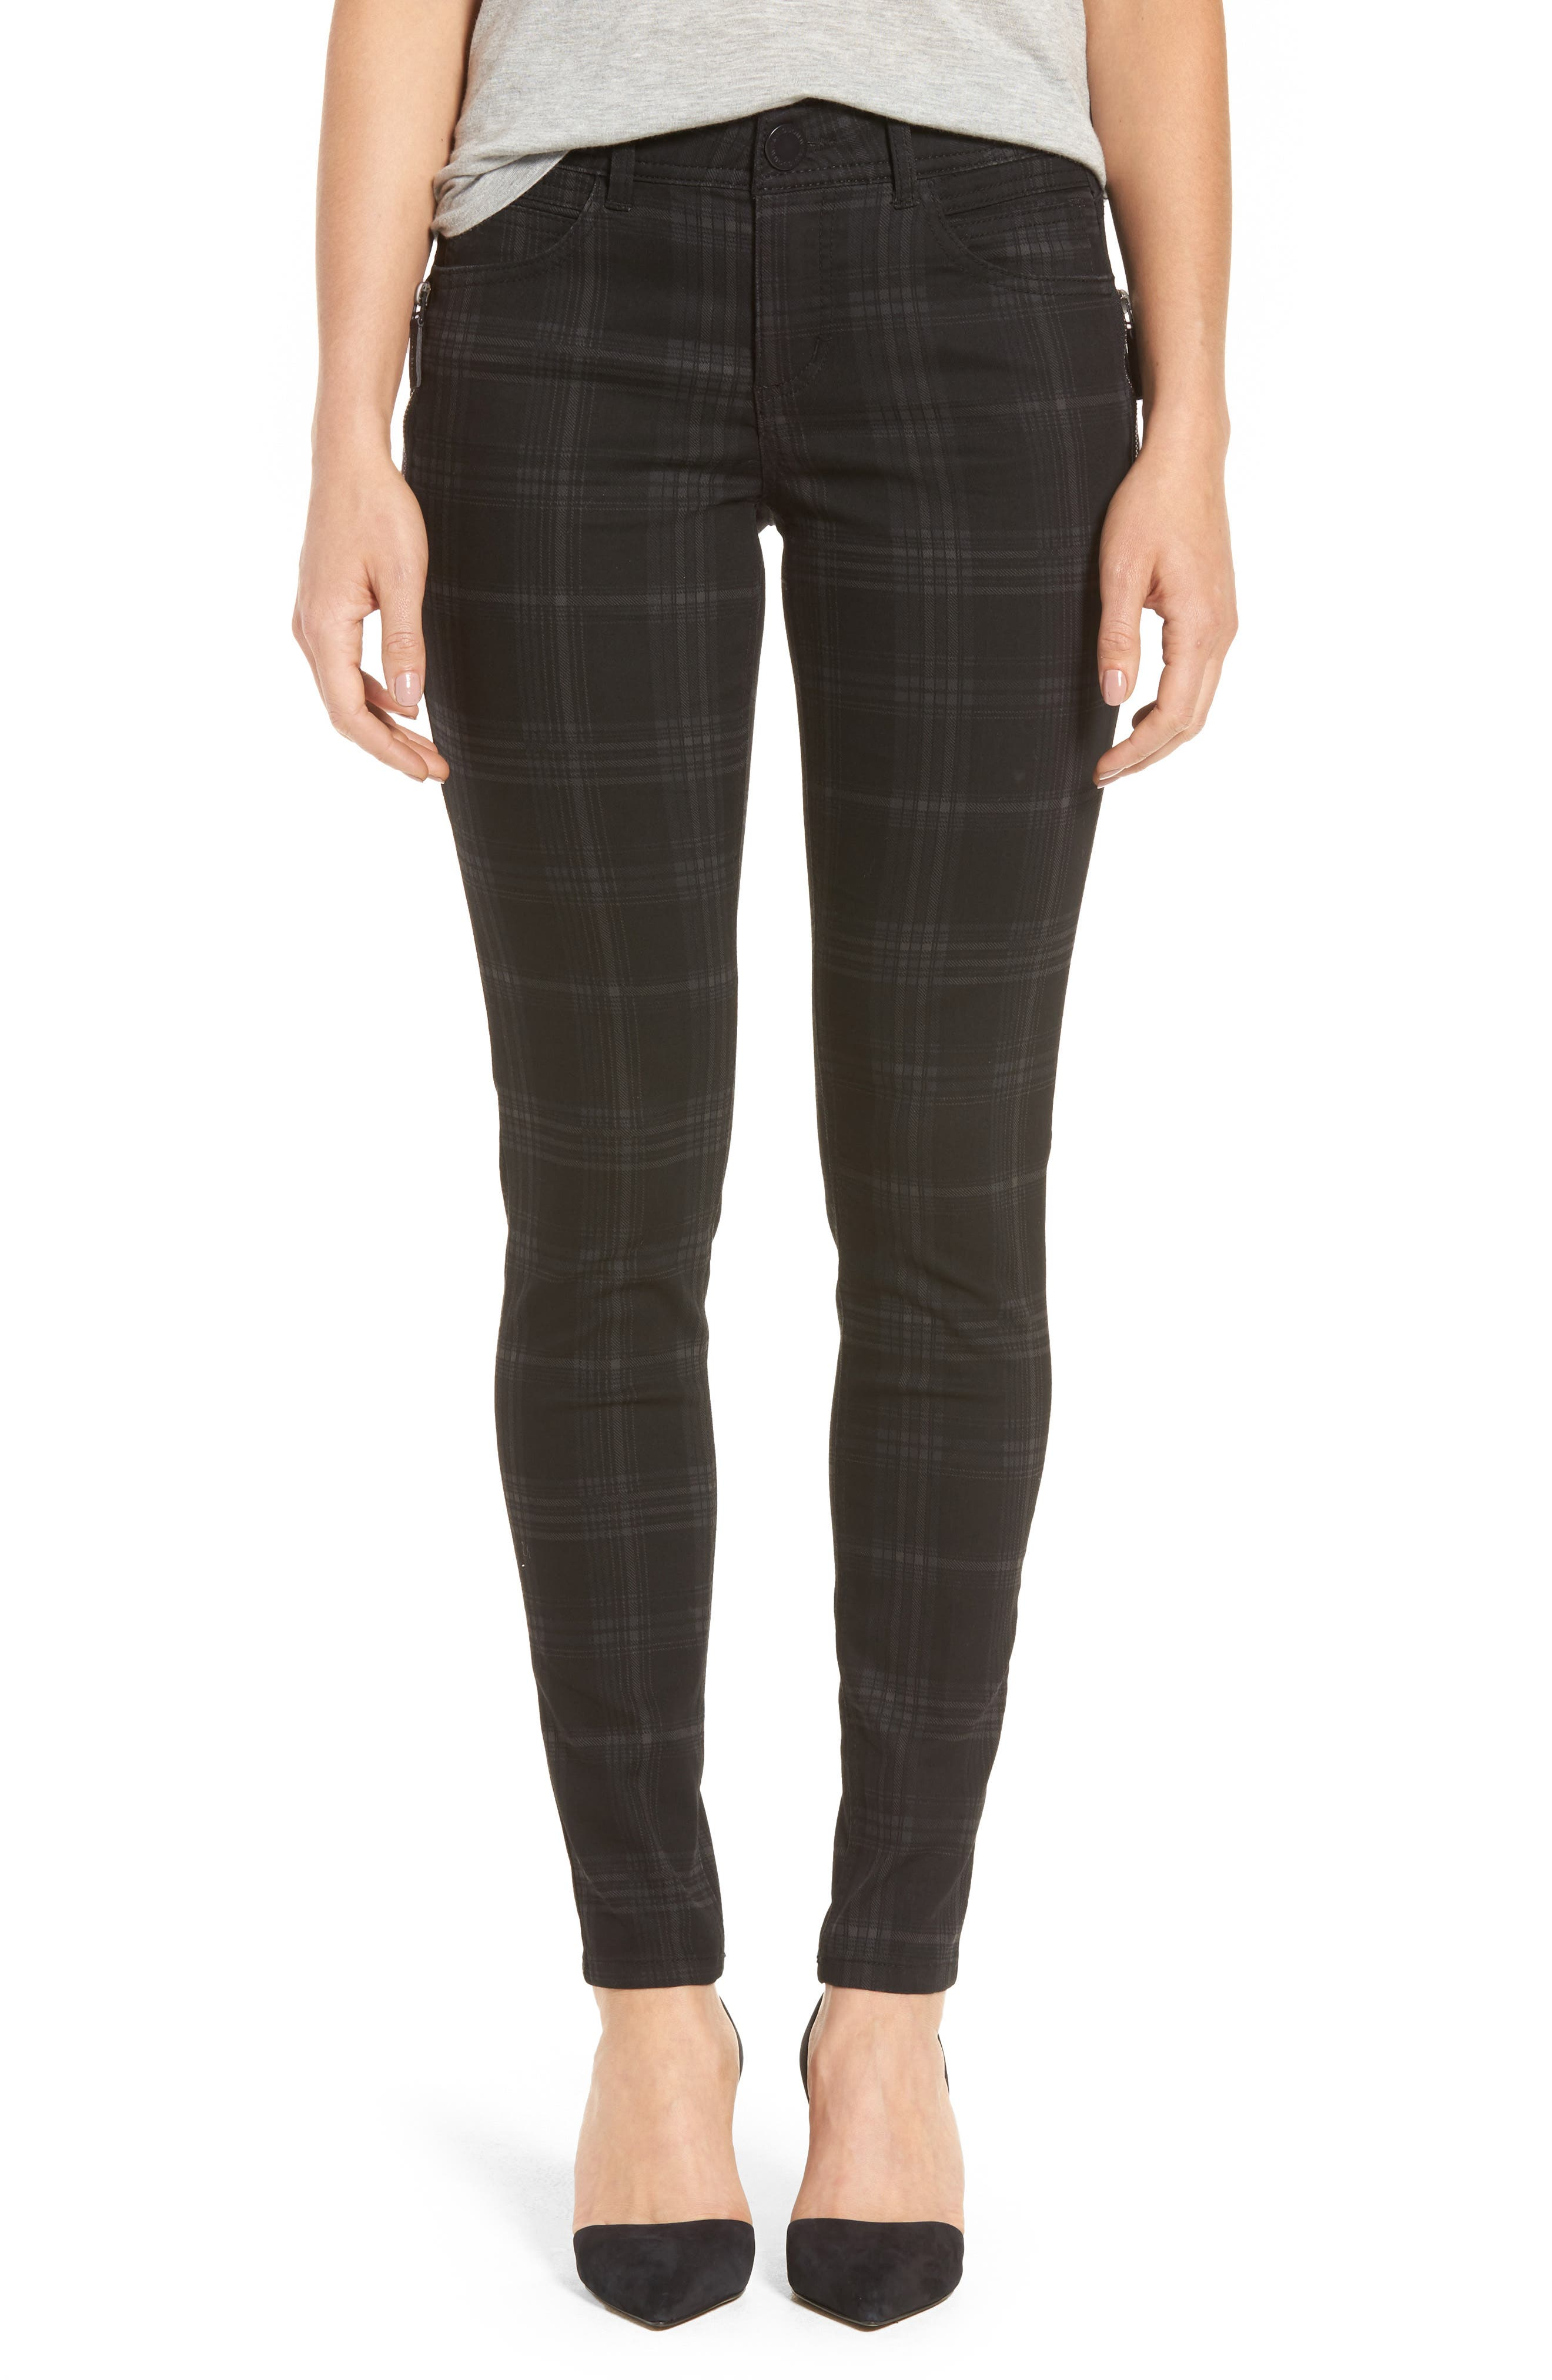 Main Image - Wit & Wisdom Ab-solution Side Zip Plaid Skinny Pants (Regular & Petite) (Nordstrom Exclusive)